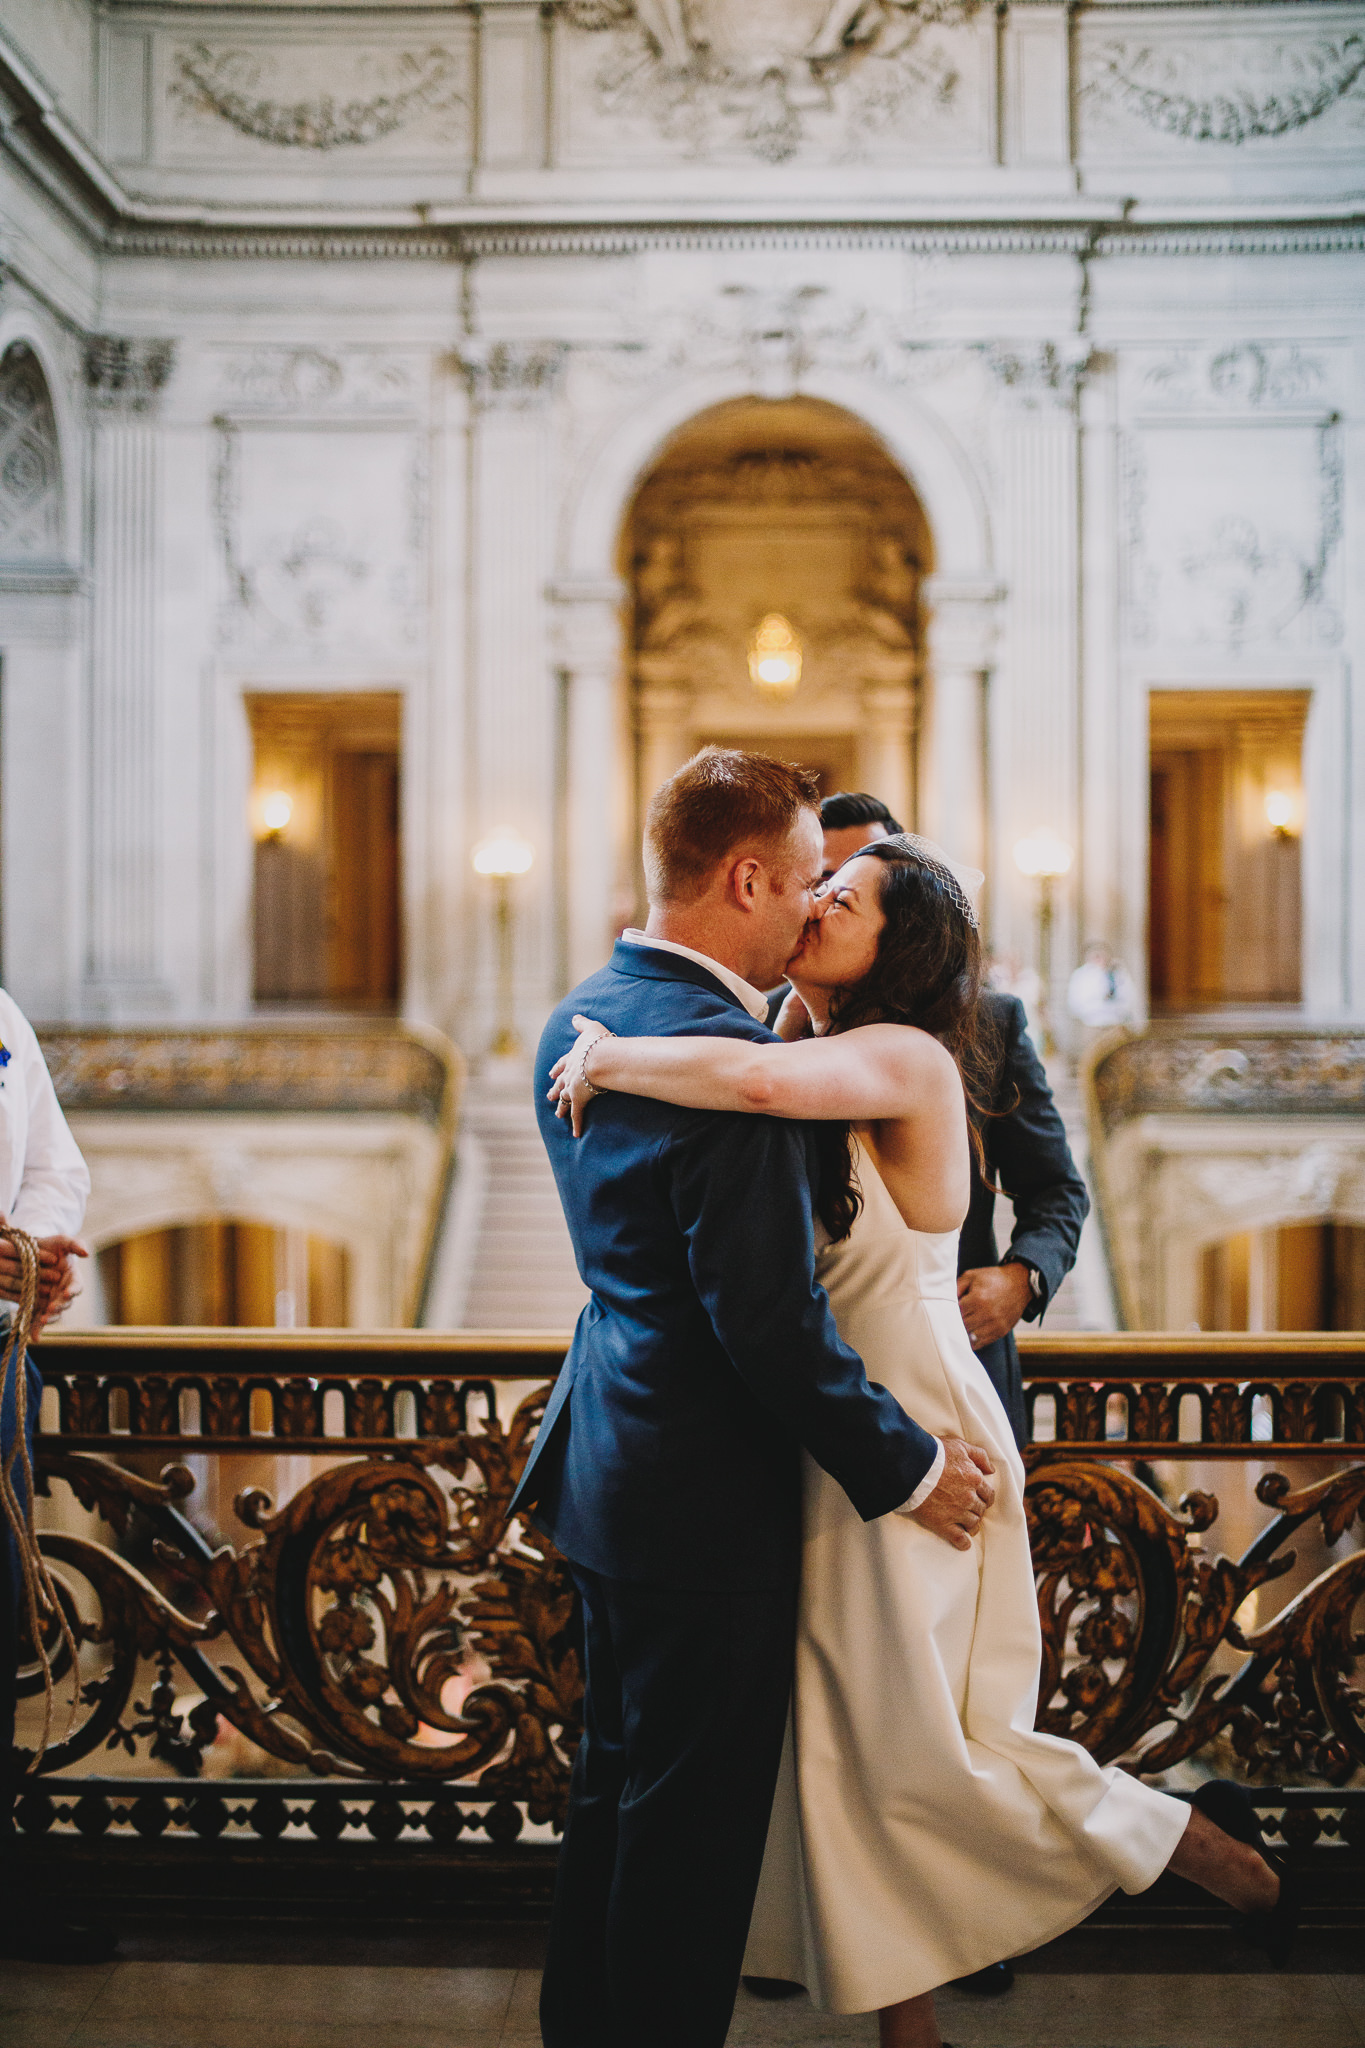 Archer Inspired Photography SF City Hall Elopement Wedding Lifestyle Documentary Affordable Photographer-129.jpg